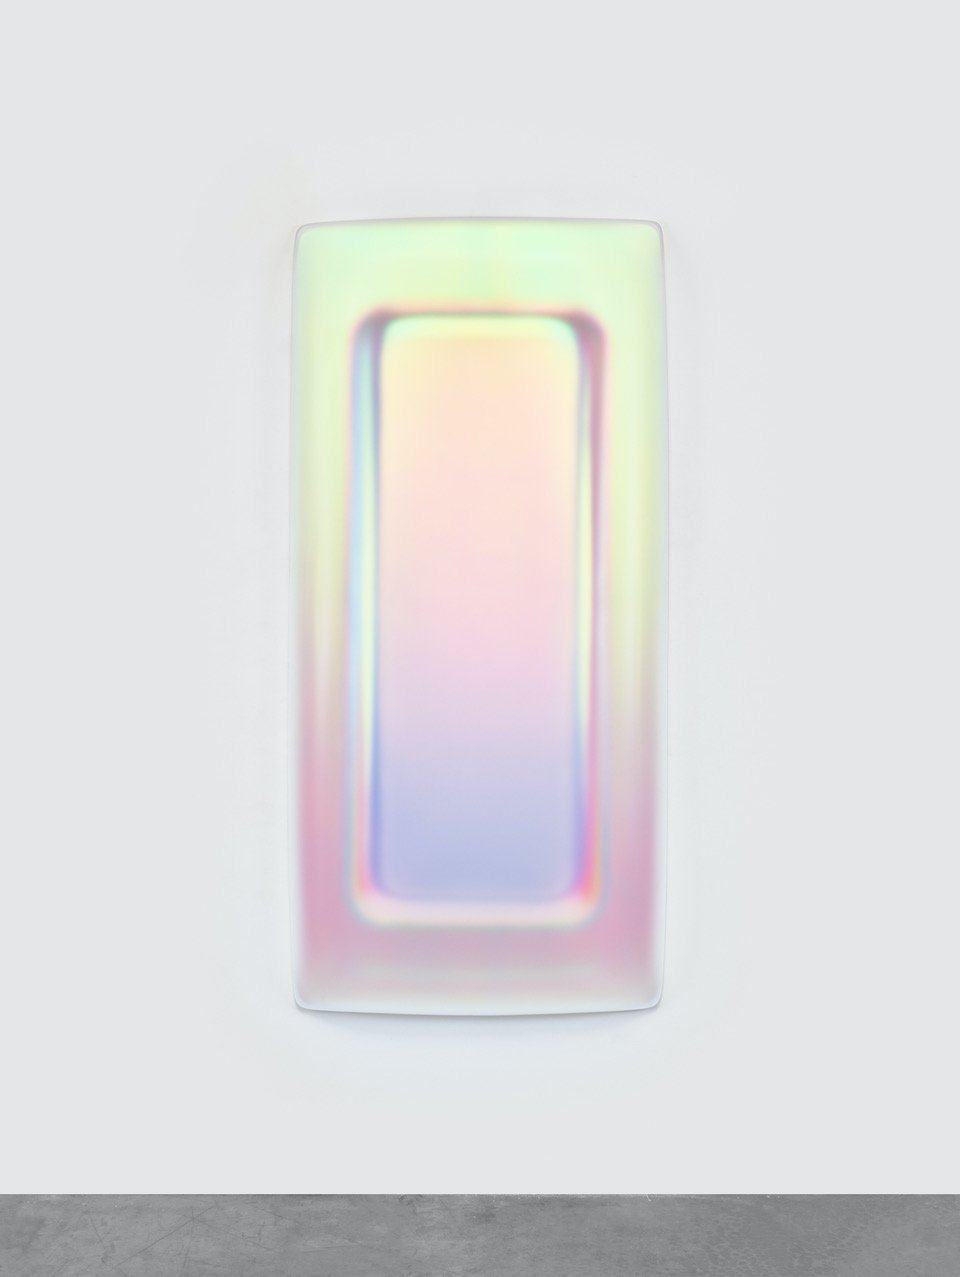 Rectanguloid (Quartz Spectrum)